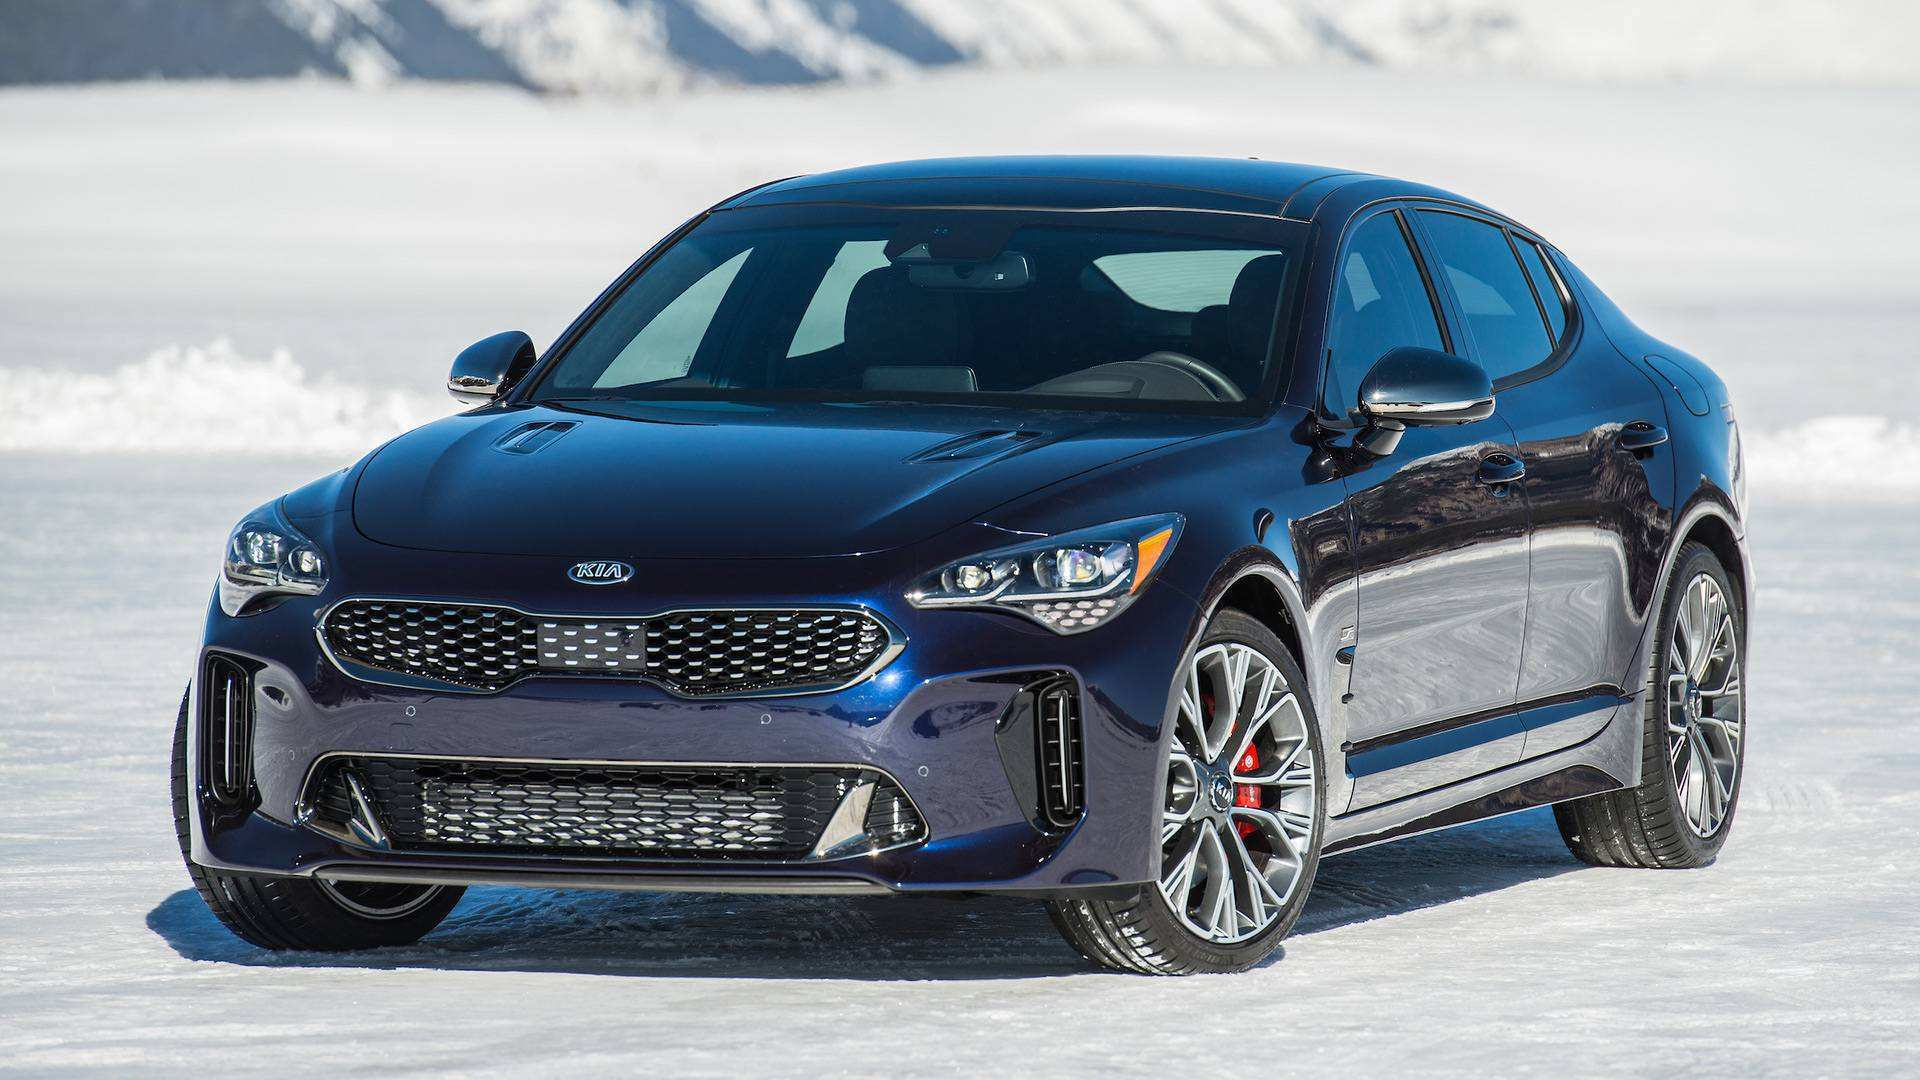 92 Great 2019 Kia Stinger Gt2 Performance by 2019 Kia Stinger Gt2